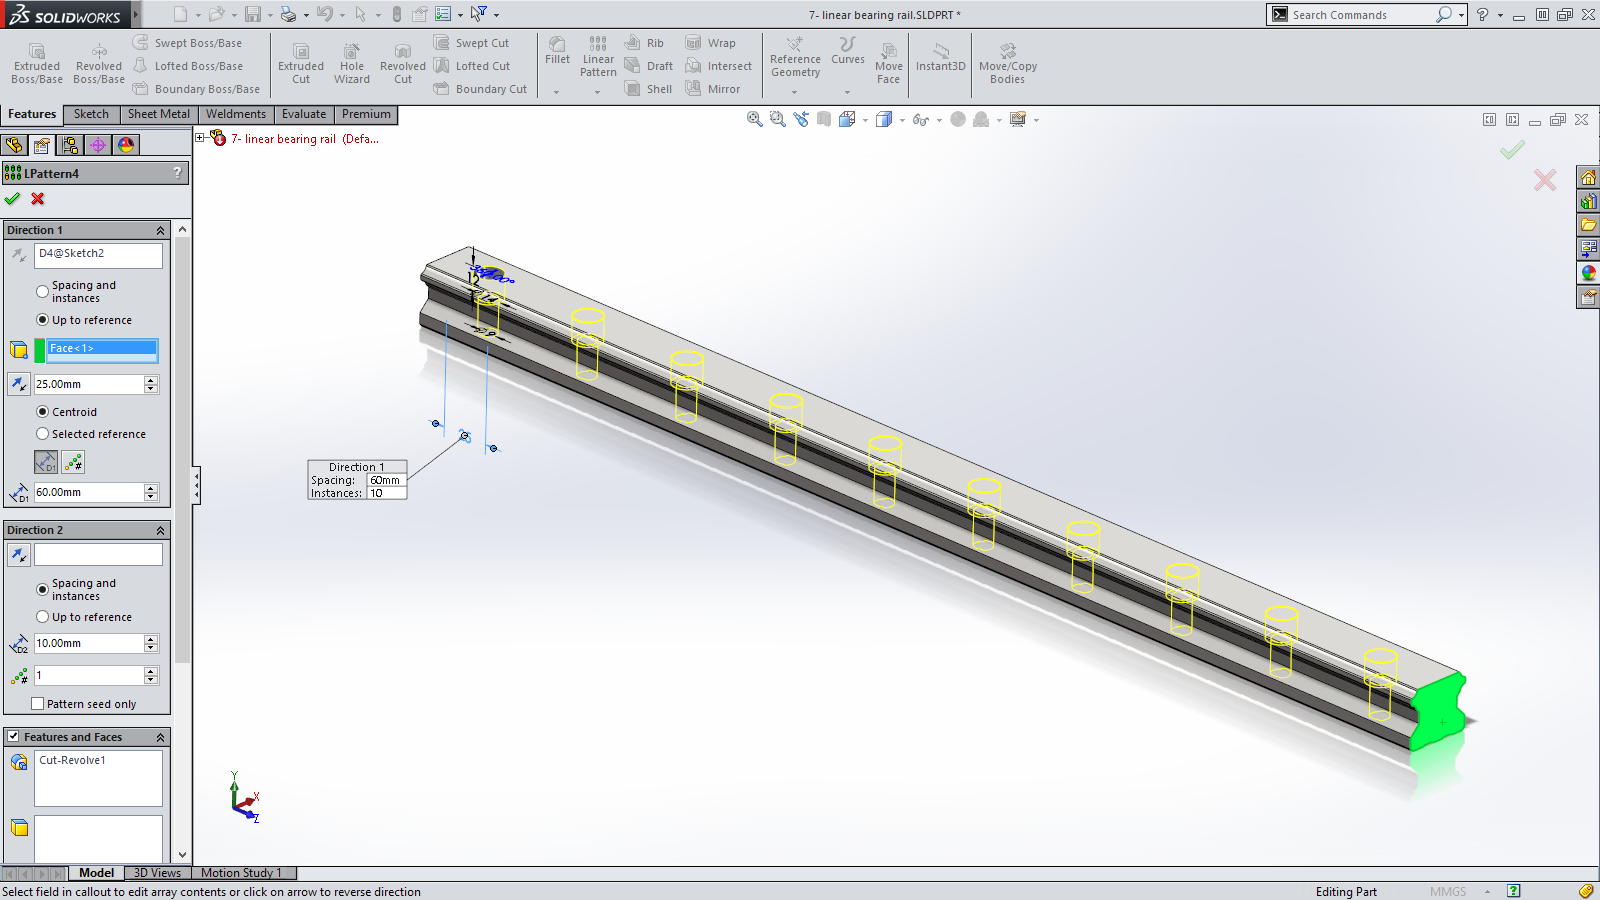 Sneak Peek: 15 Features coming in SOLIDWORKS 2015 – Up to Reference Pattern